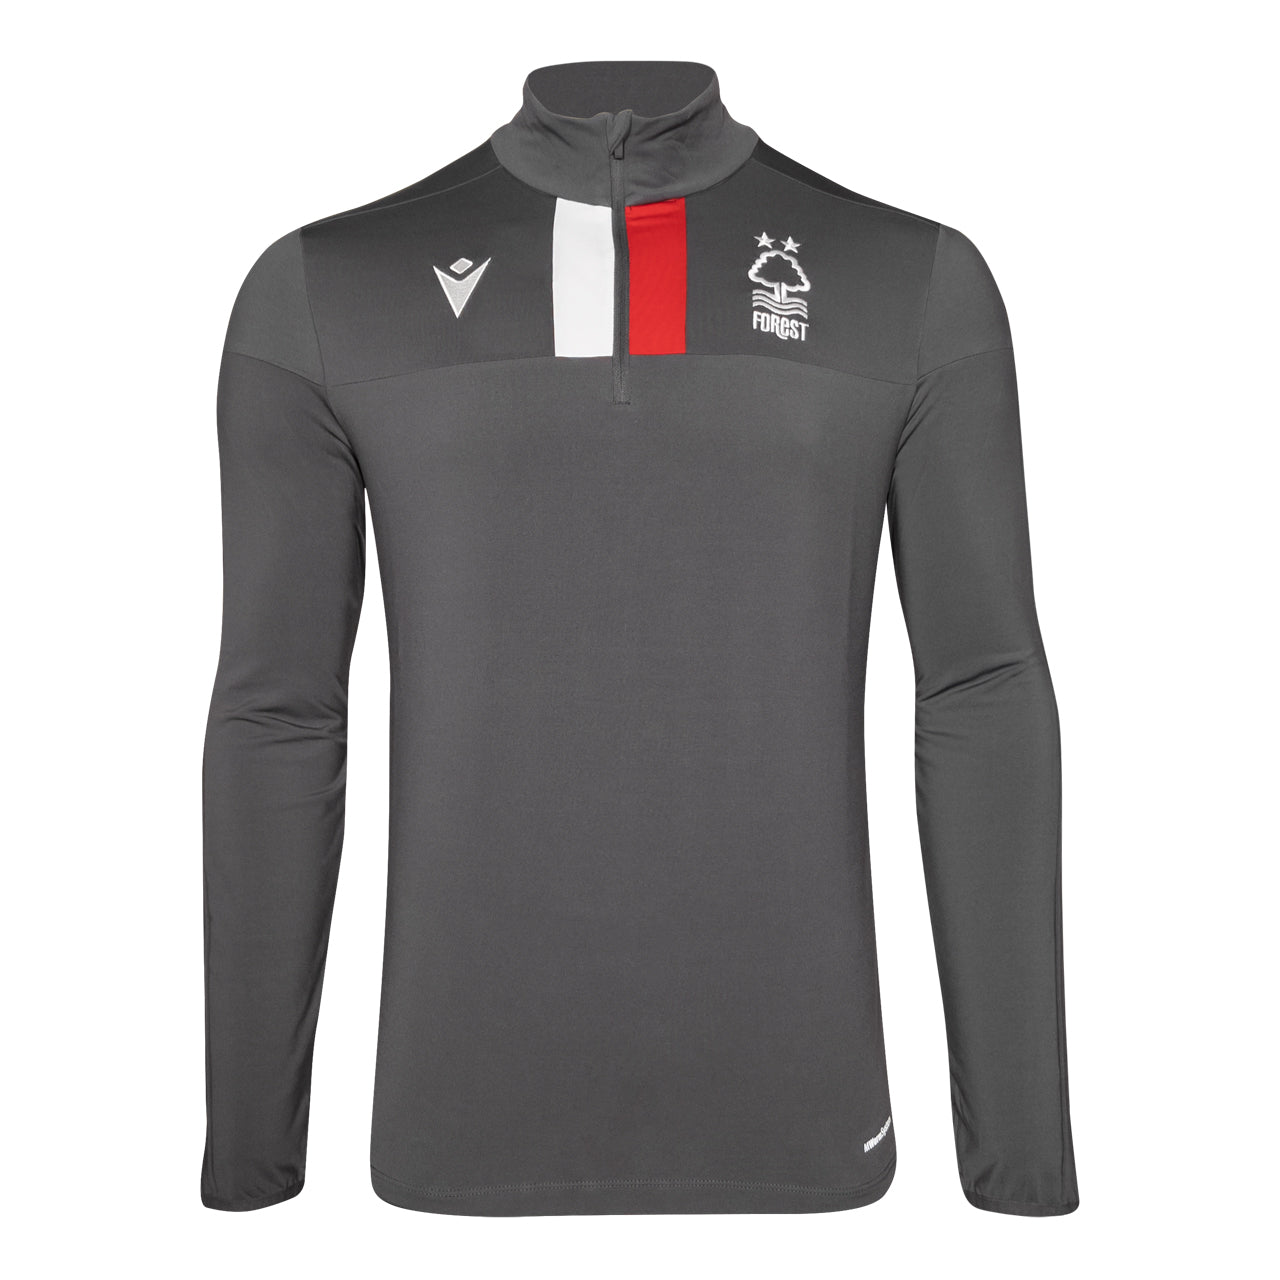 NFFC Mens Staff 1/4 Zip Top 19/20